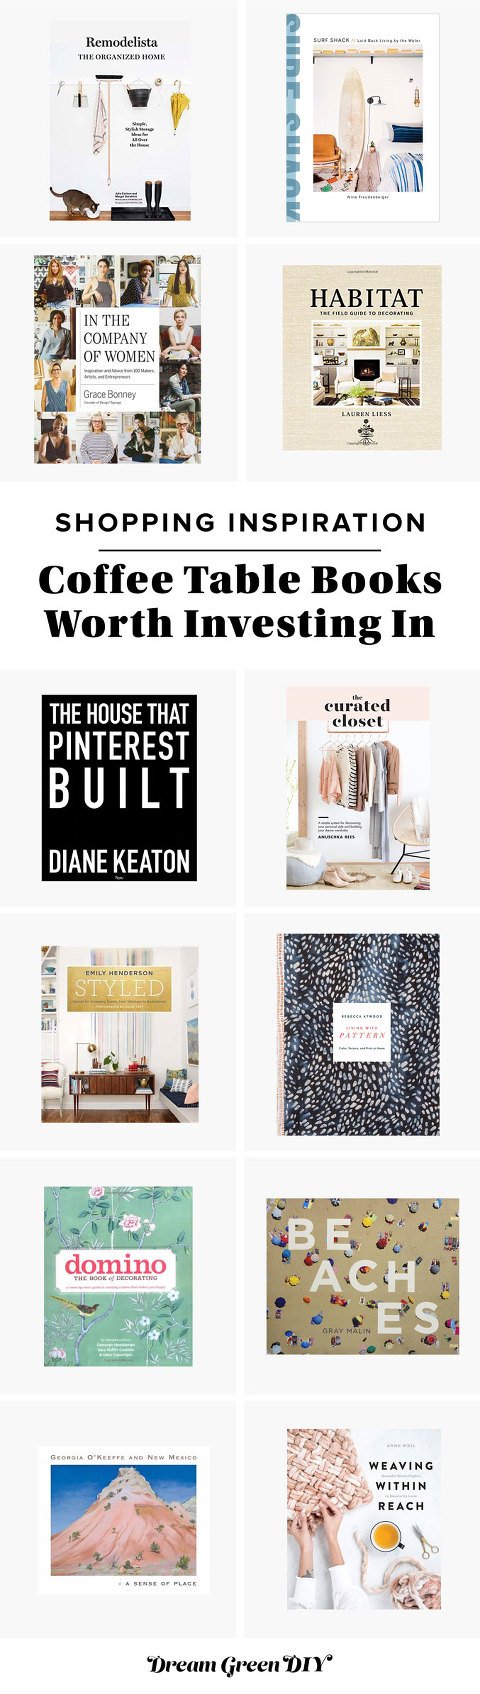 Coffee Table Books Worth Investing In